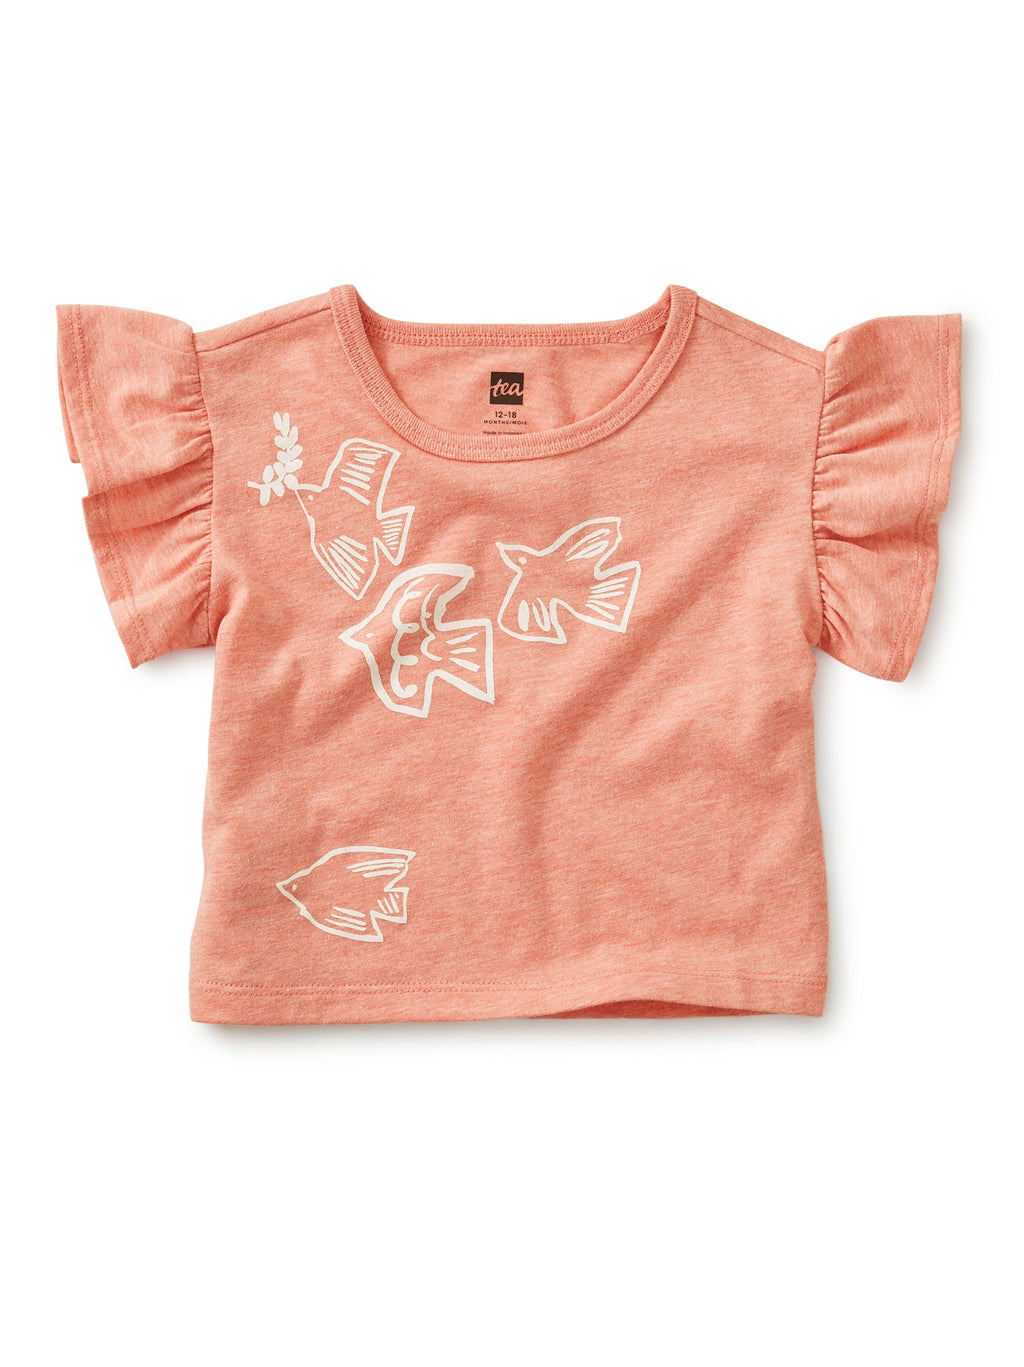 Birds Flying High Ruffle Tee